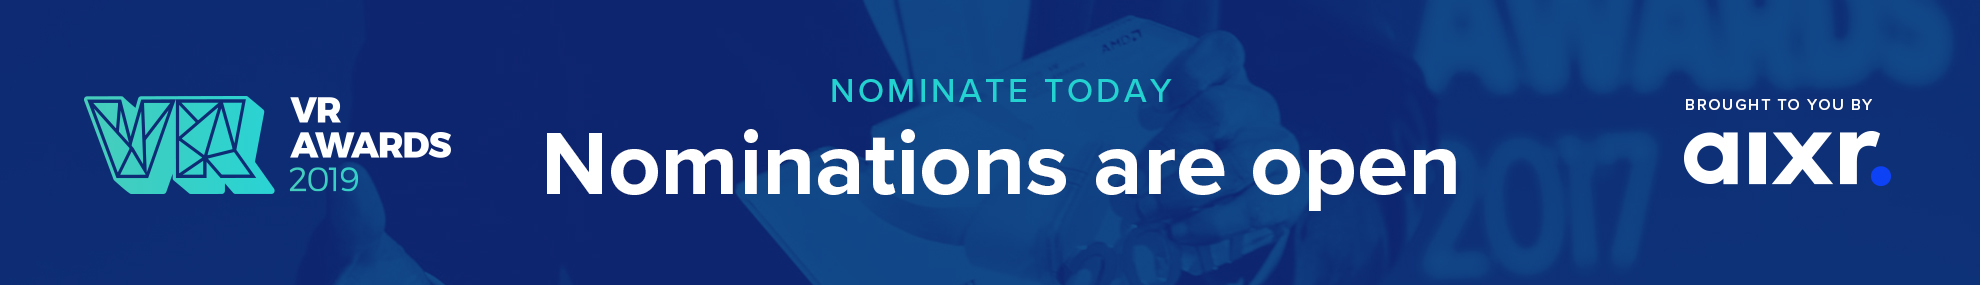 VR Awards 2019 Nominations open now - Celebrating outstanding achievement in VR